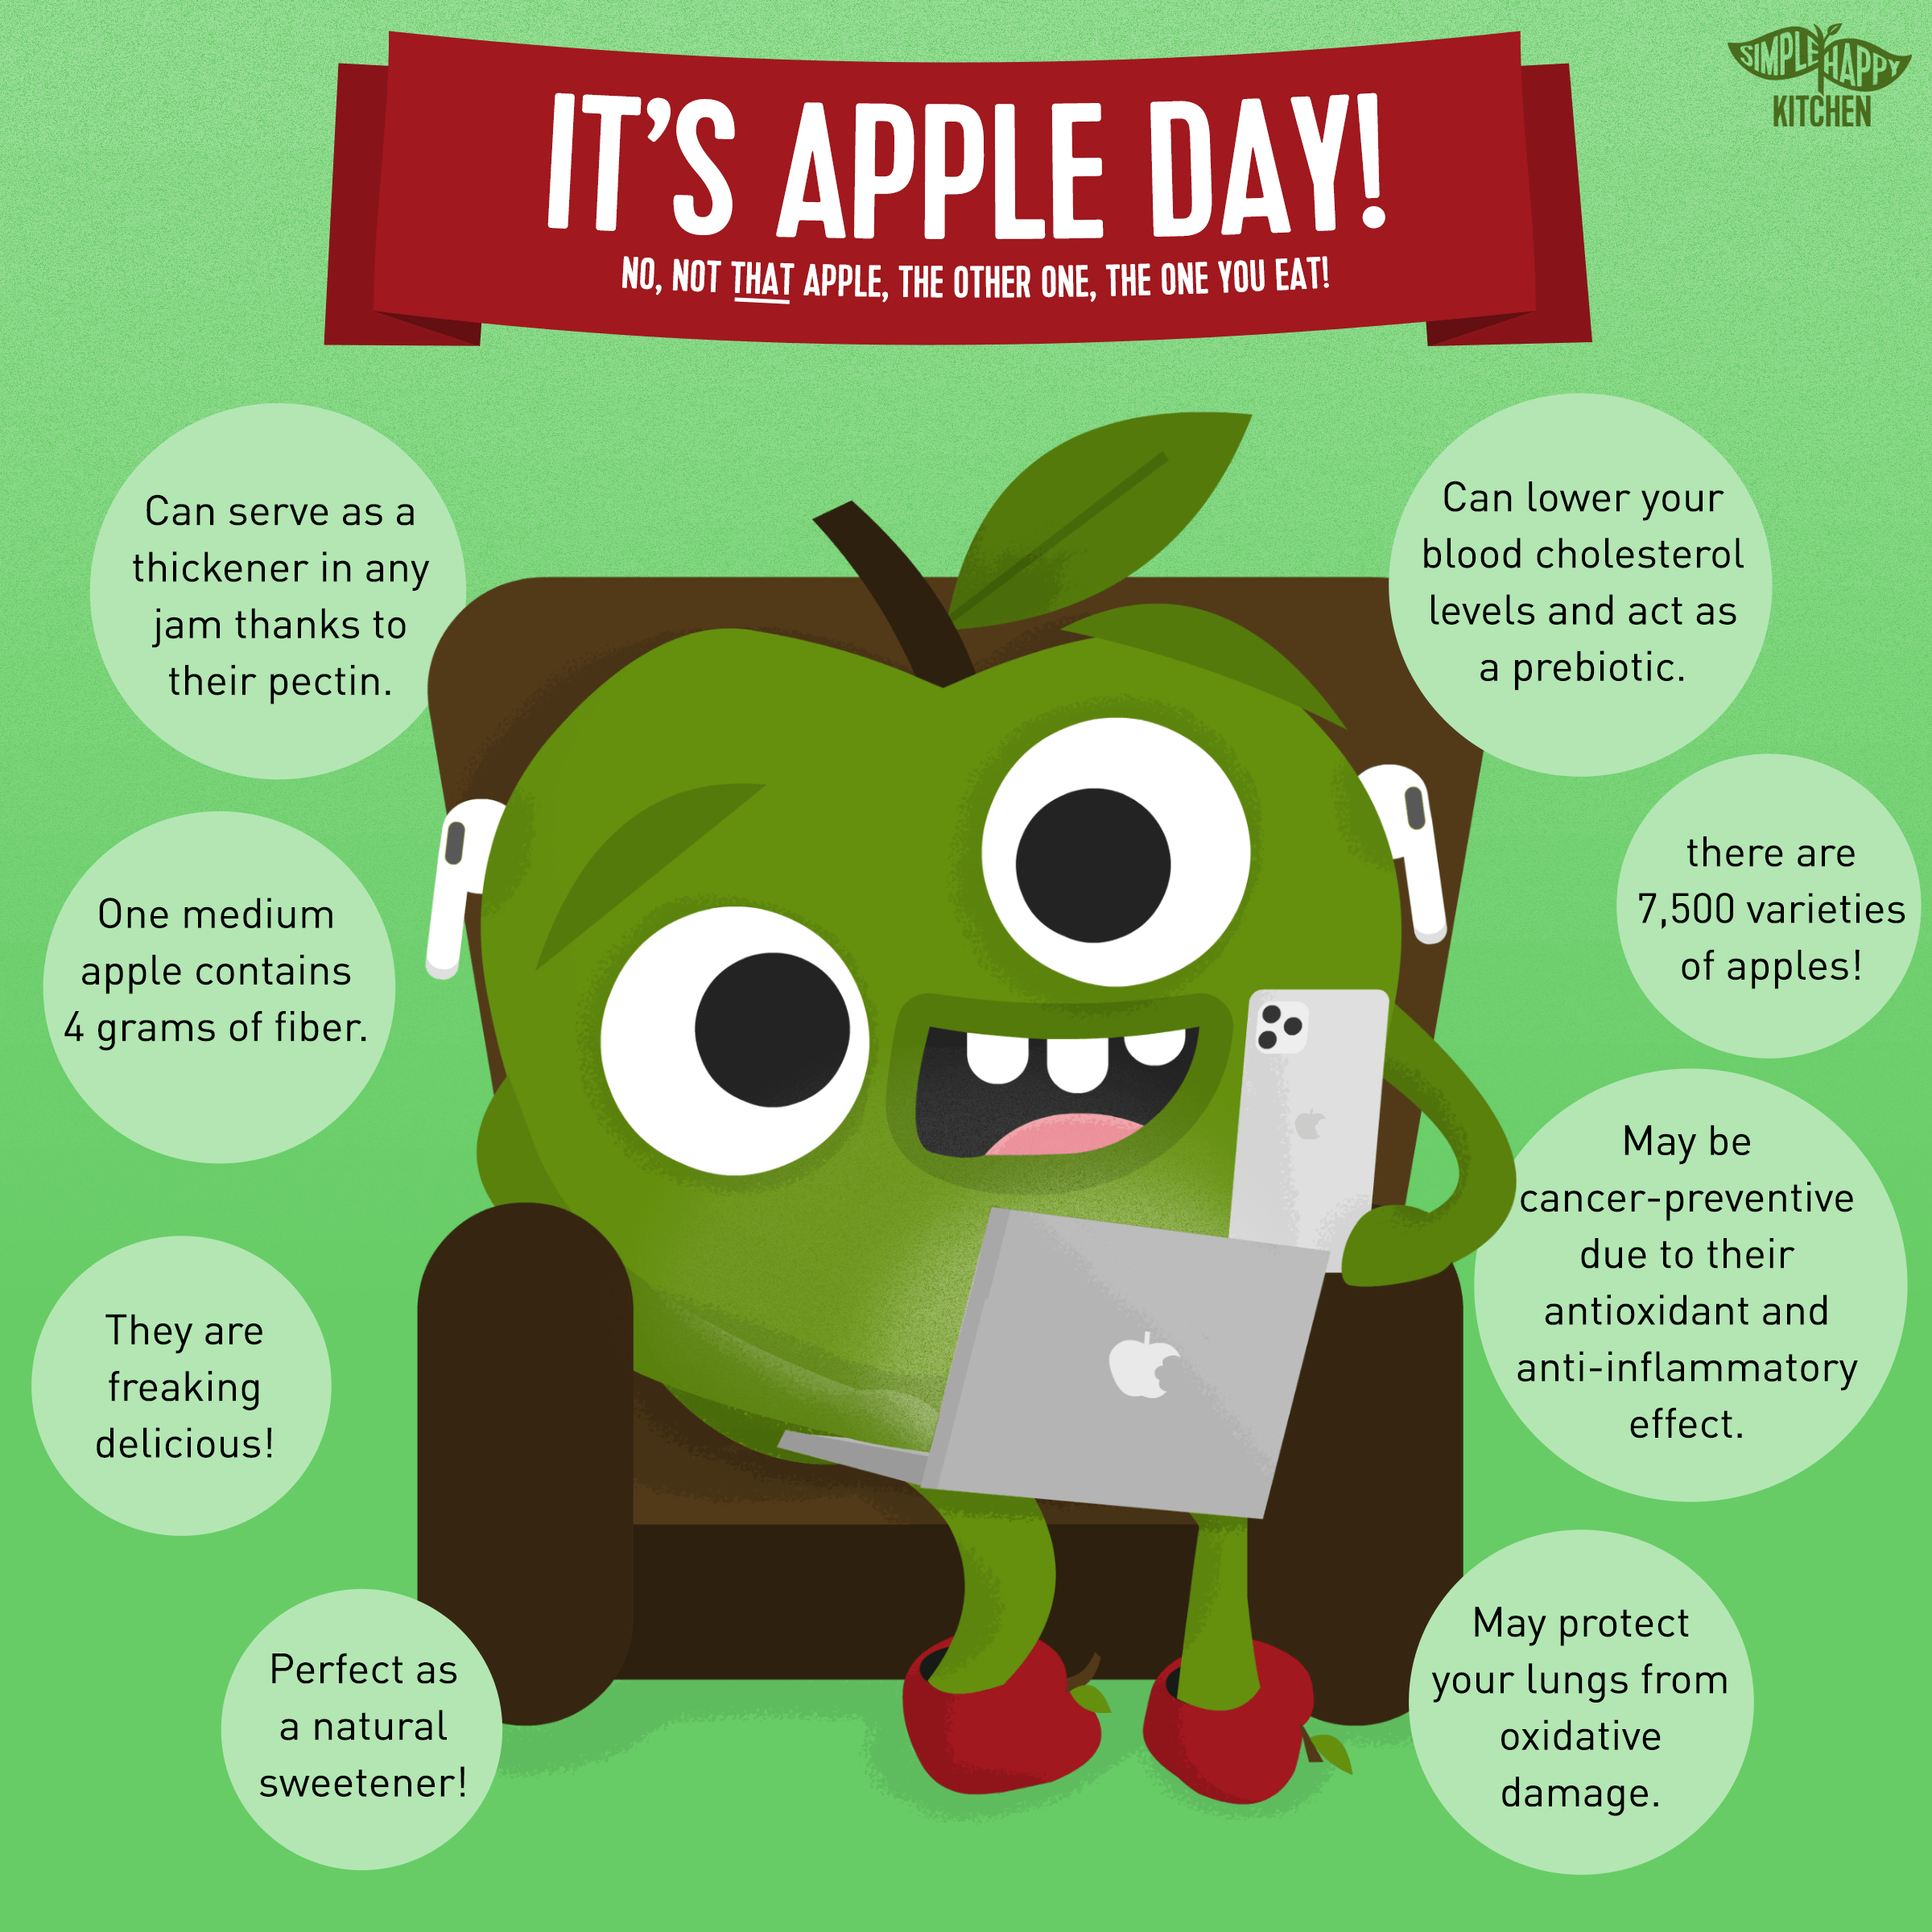 It's apple day! No, not that apple, the other one, the one you eat!